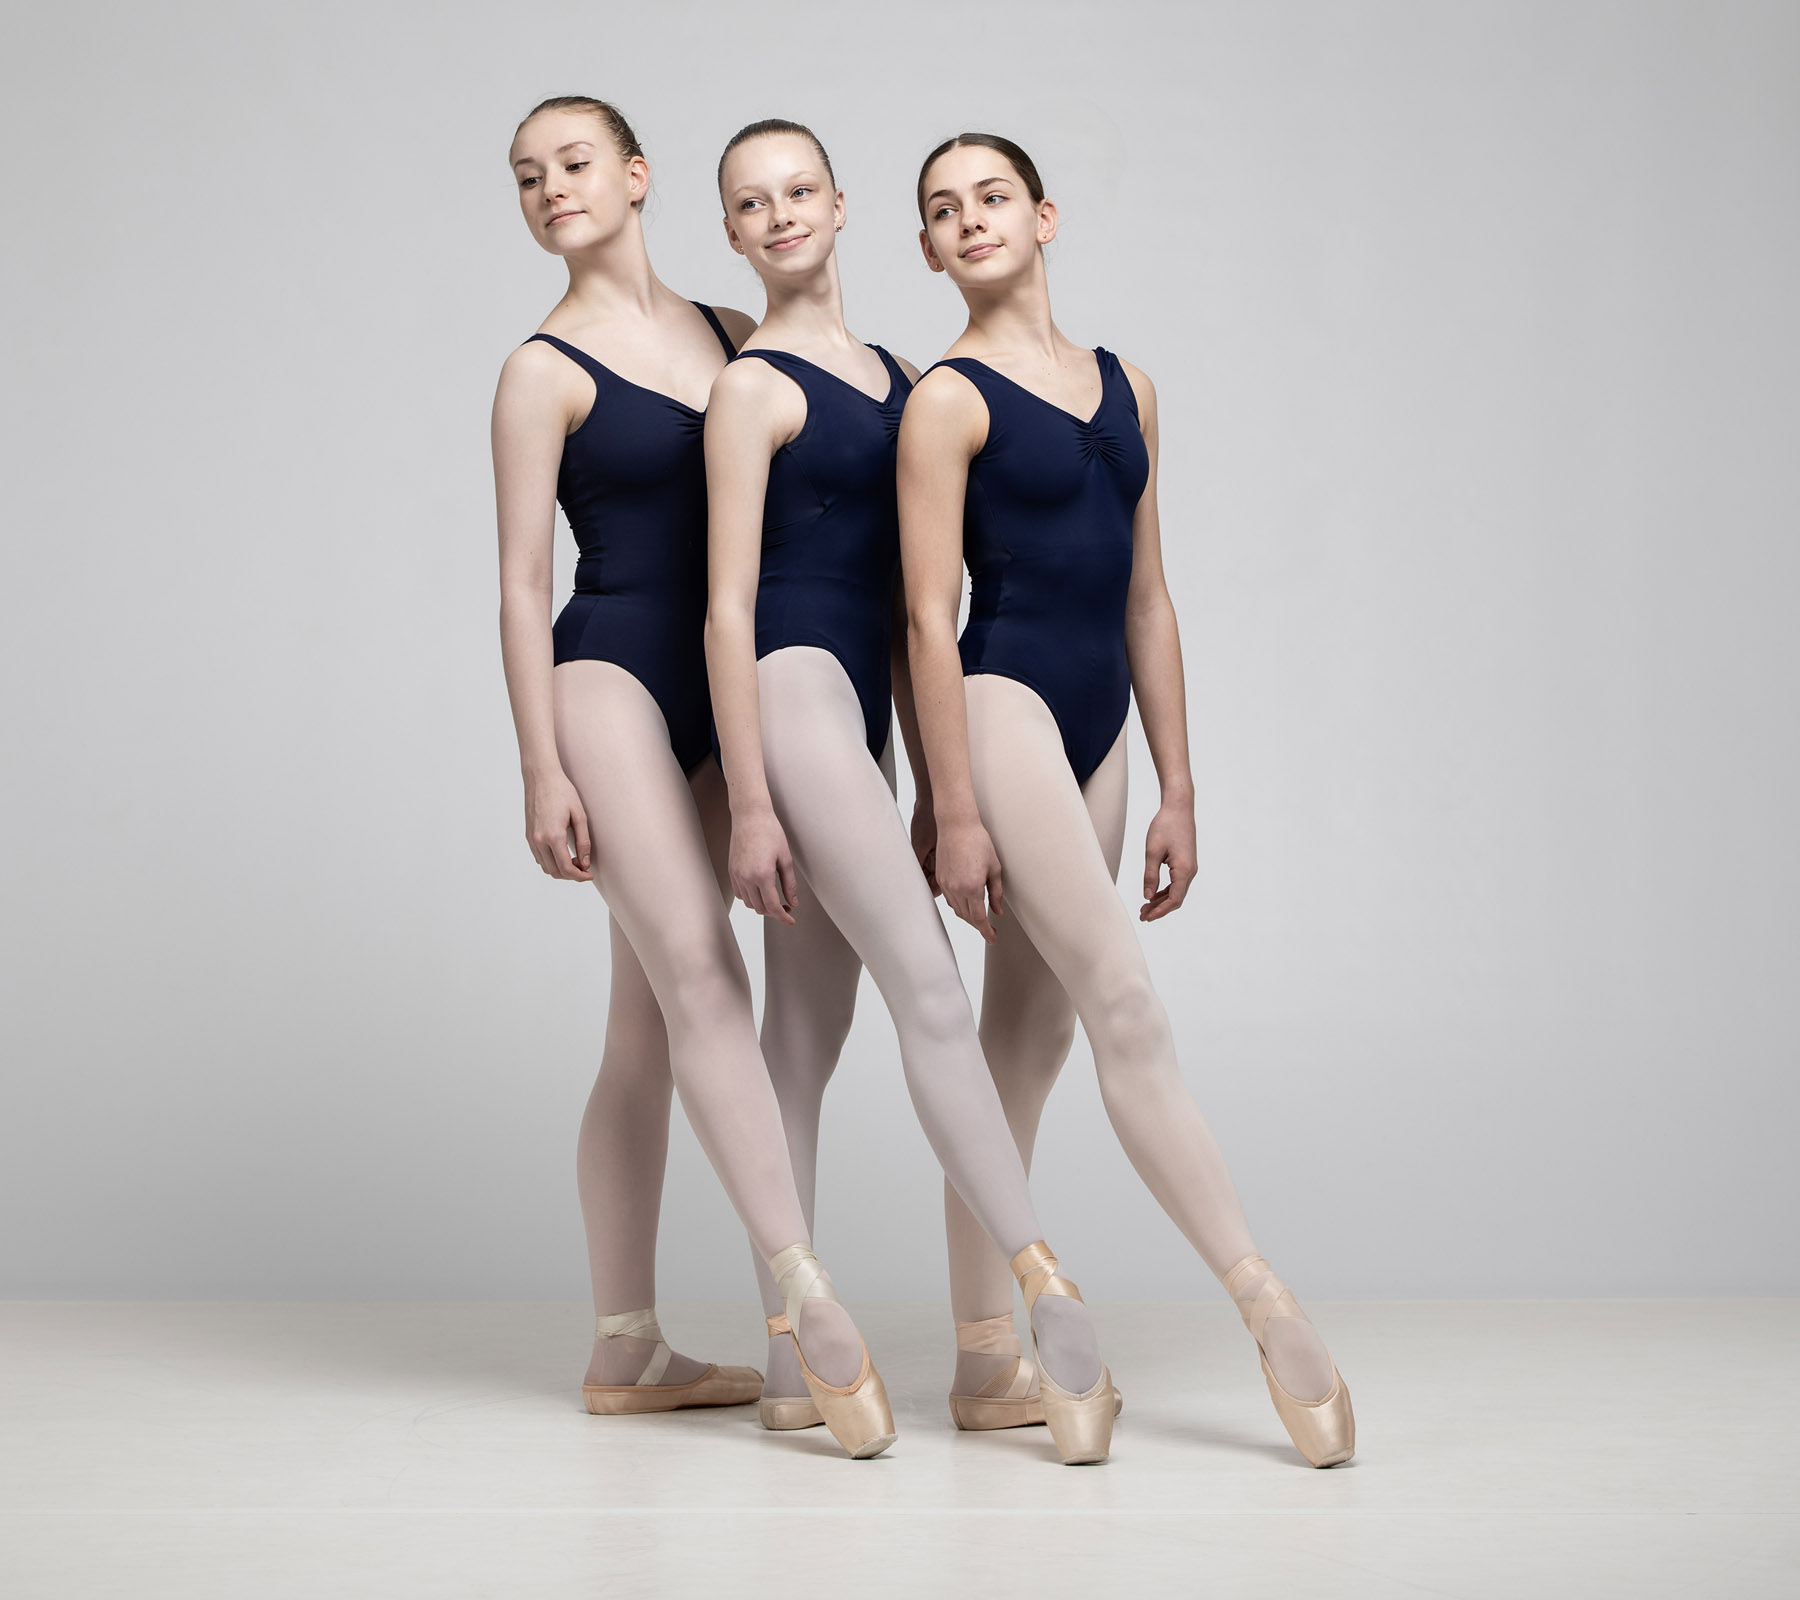 Three ballet students pointing their feet